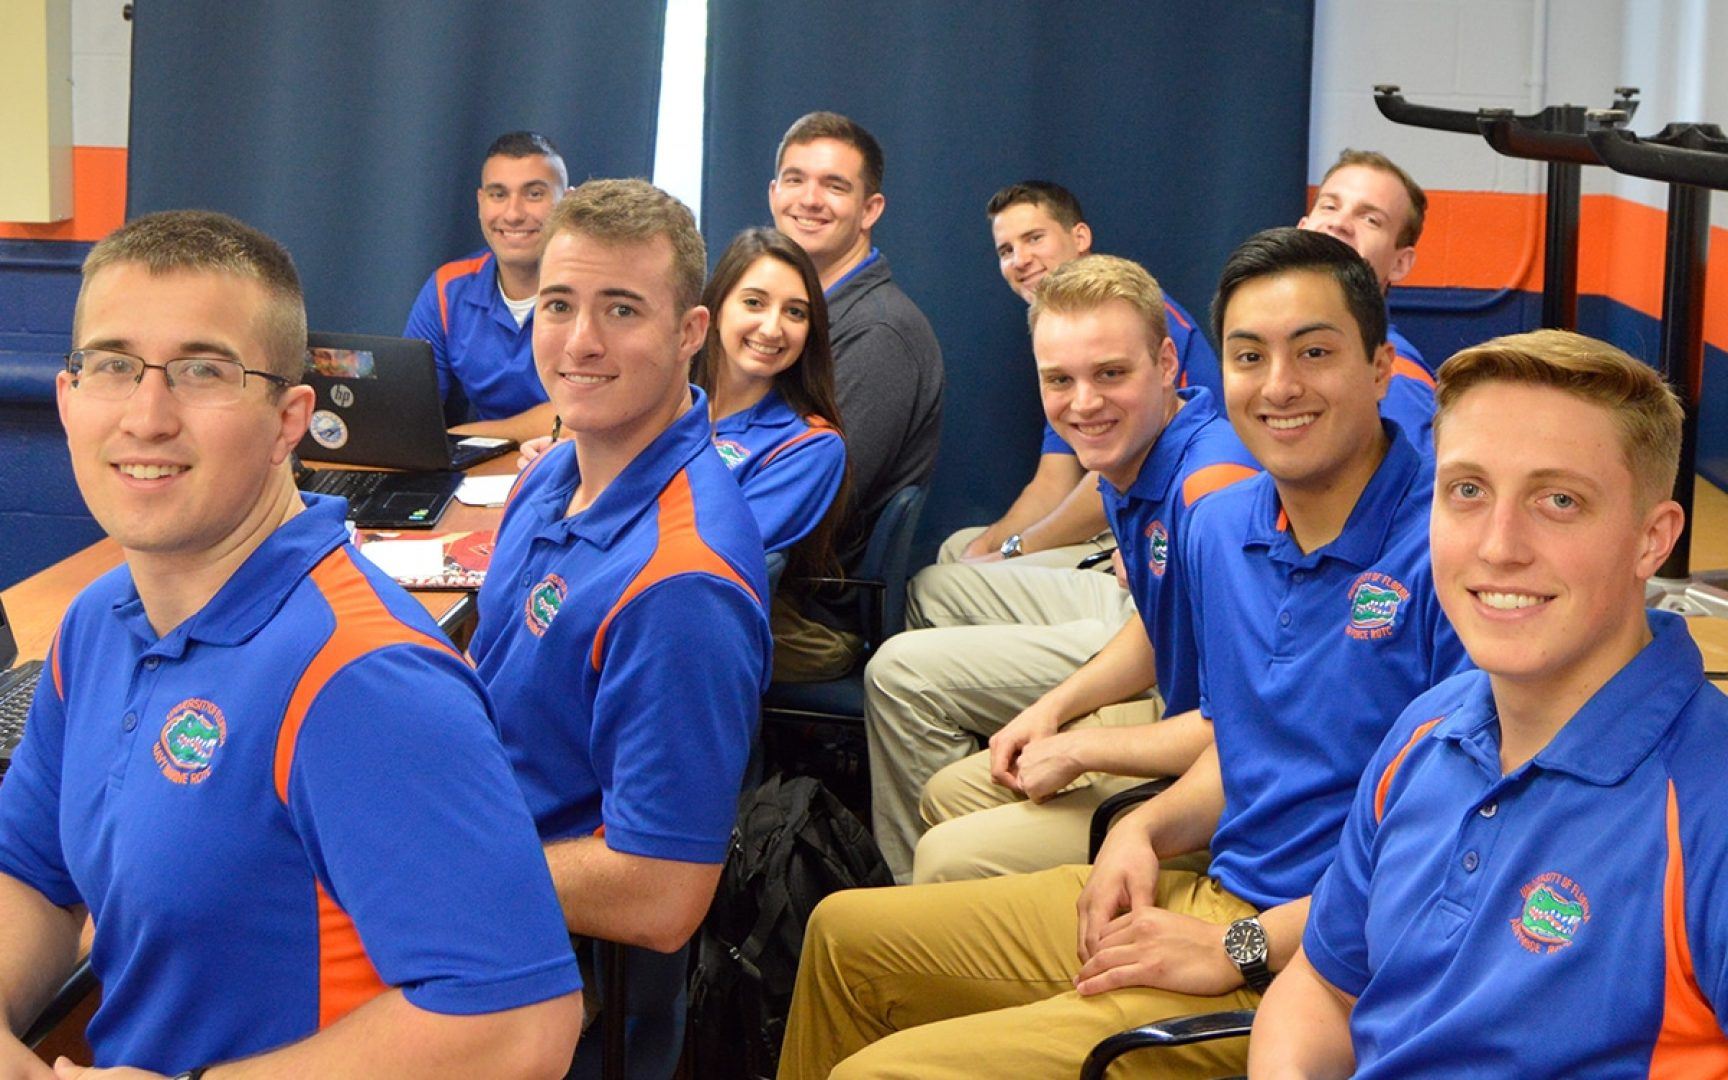 UF ROTC students pose for a photo at the UF ROTC Ethics Case Competition